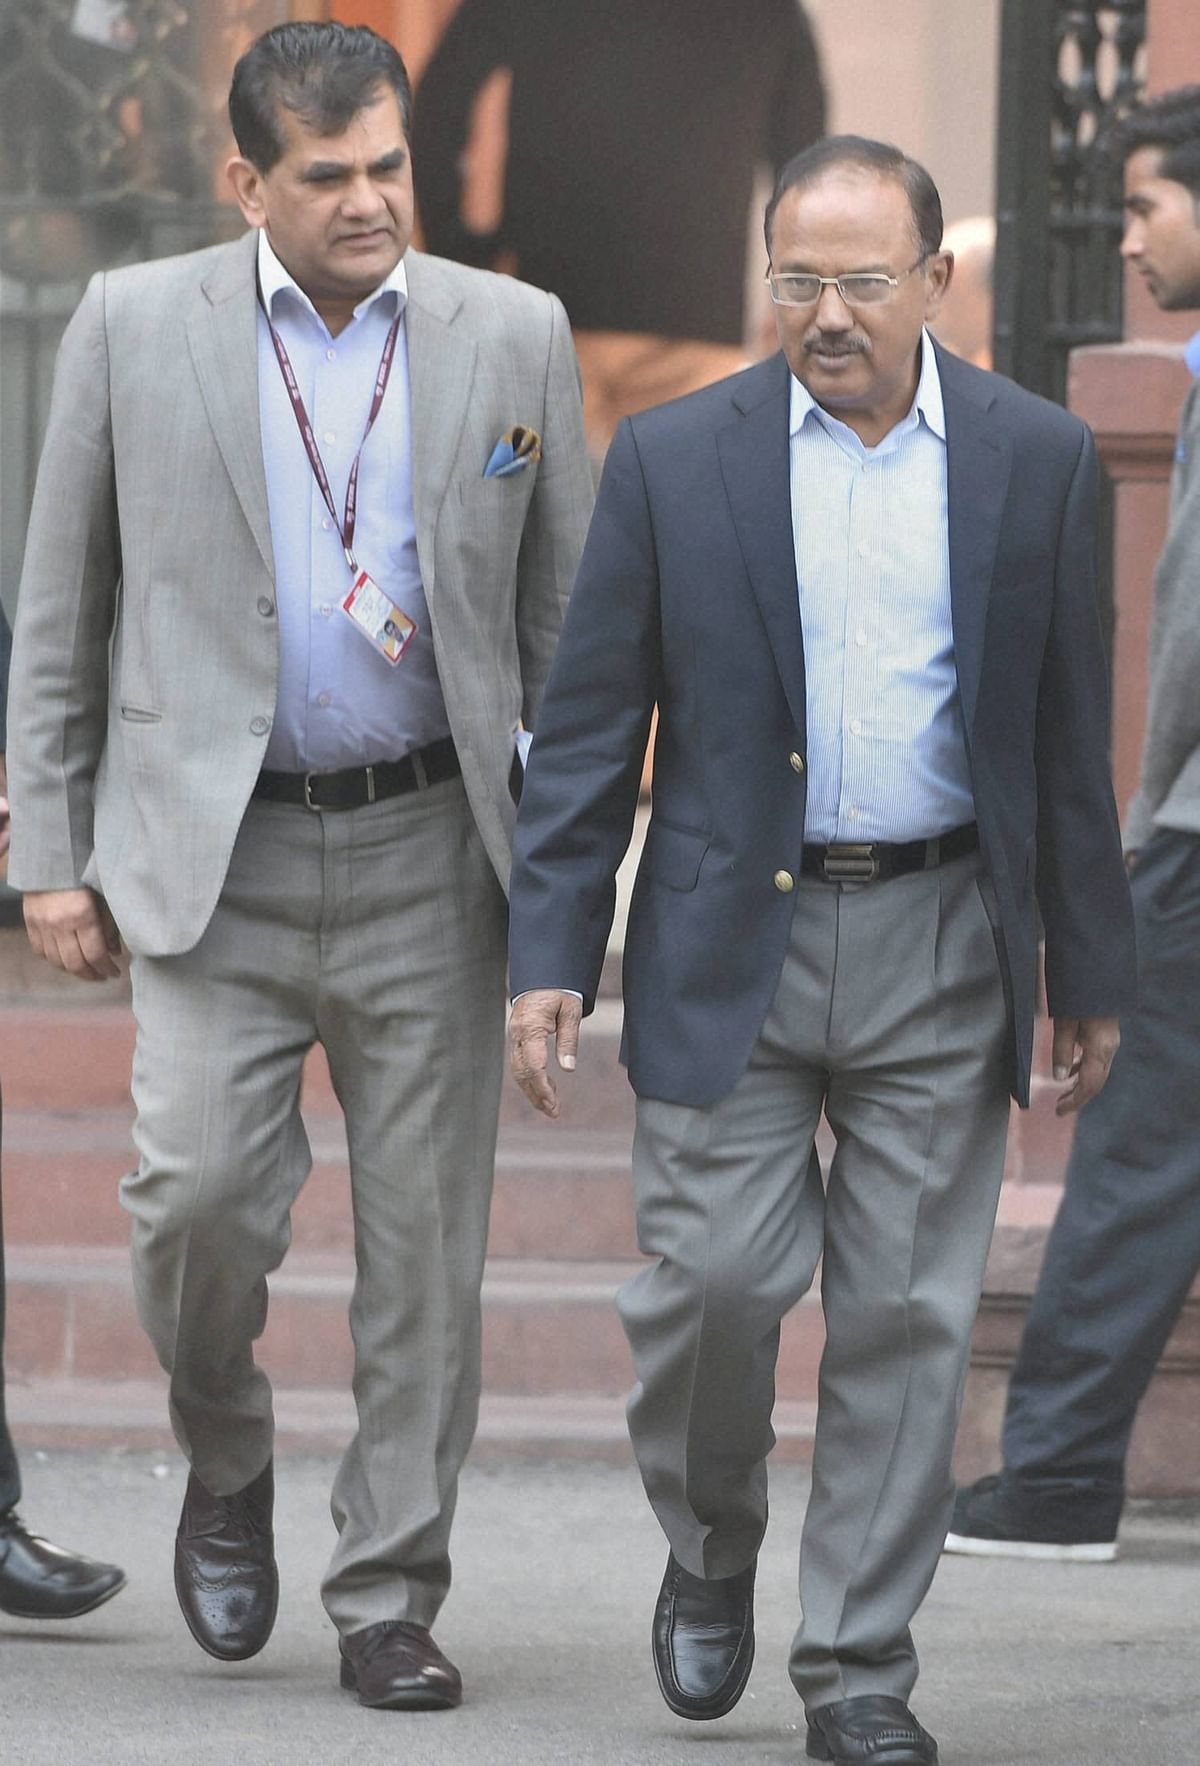 National Security Adviser (NSA) Ajit Doval and Amitabh kant leaves after a Cabinet meeting in New Delhi. (Photo: PTI)